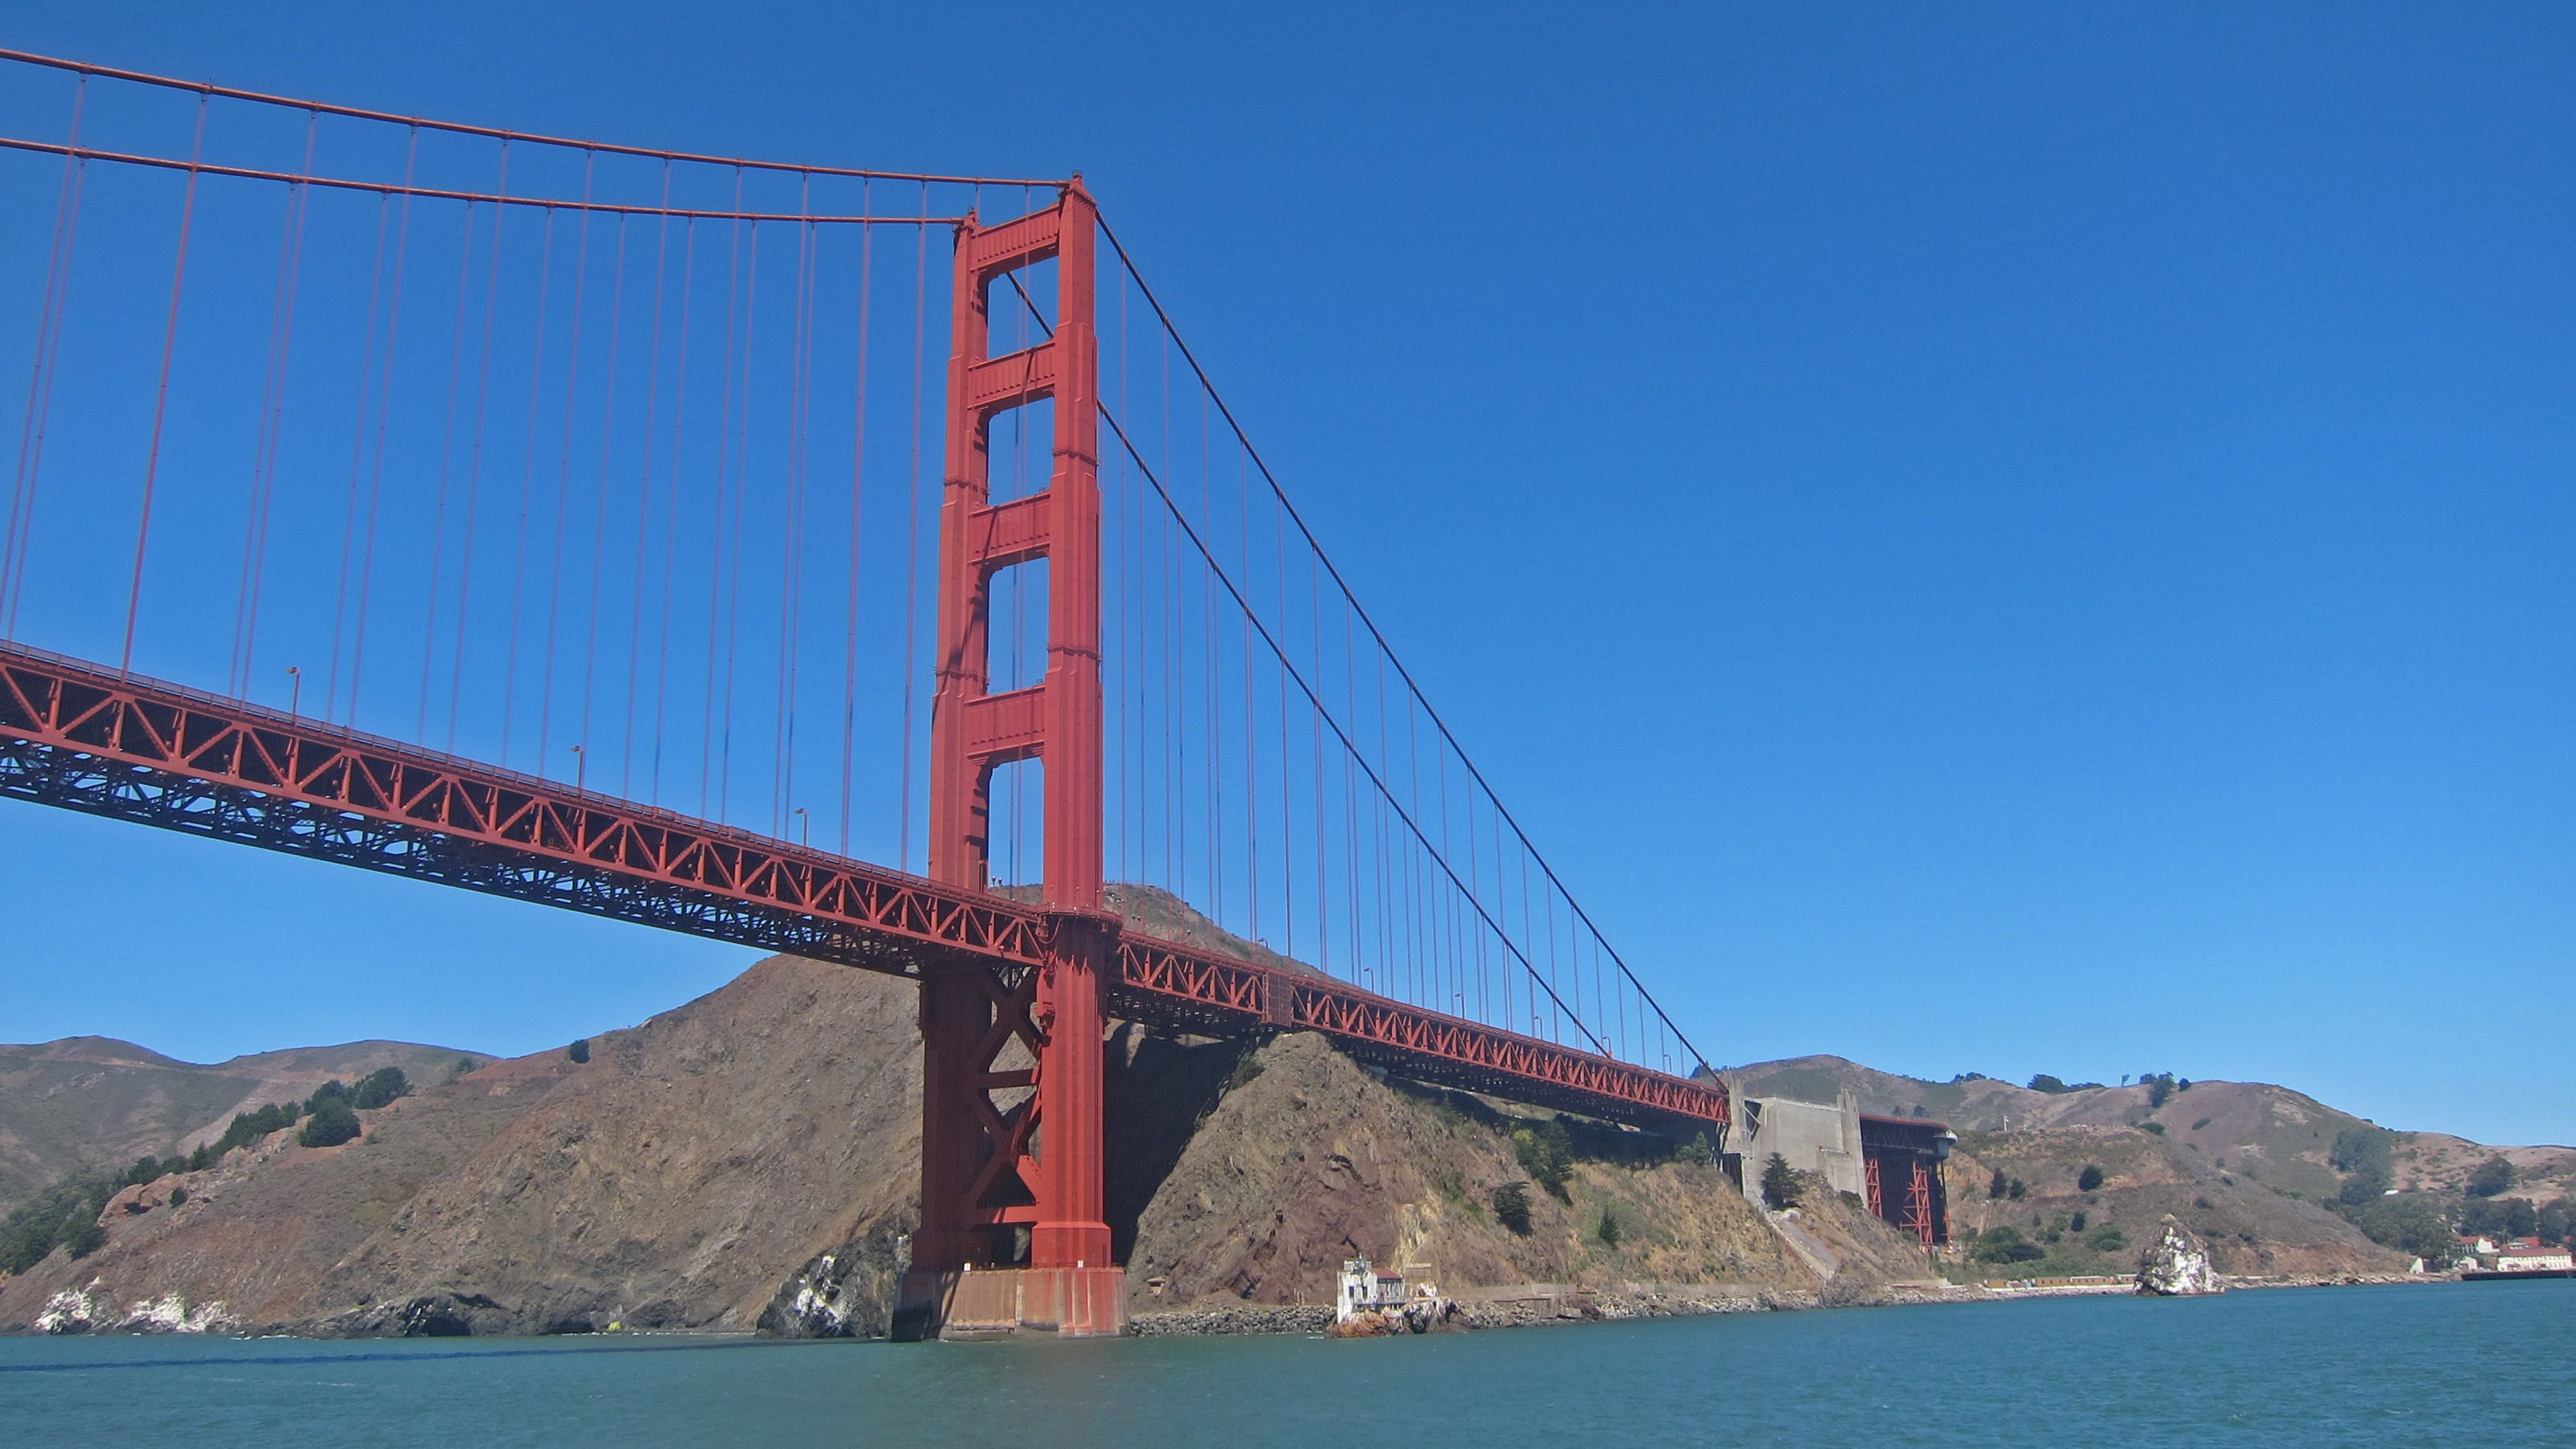 View of the Golden Gate Bride from the water in San Francisco